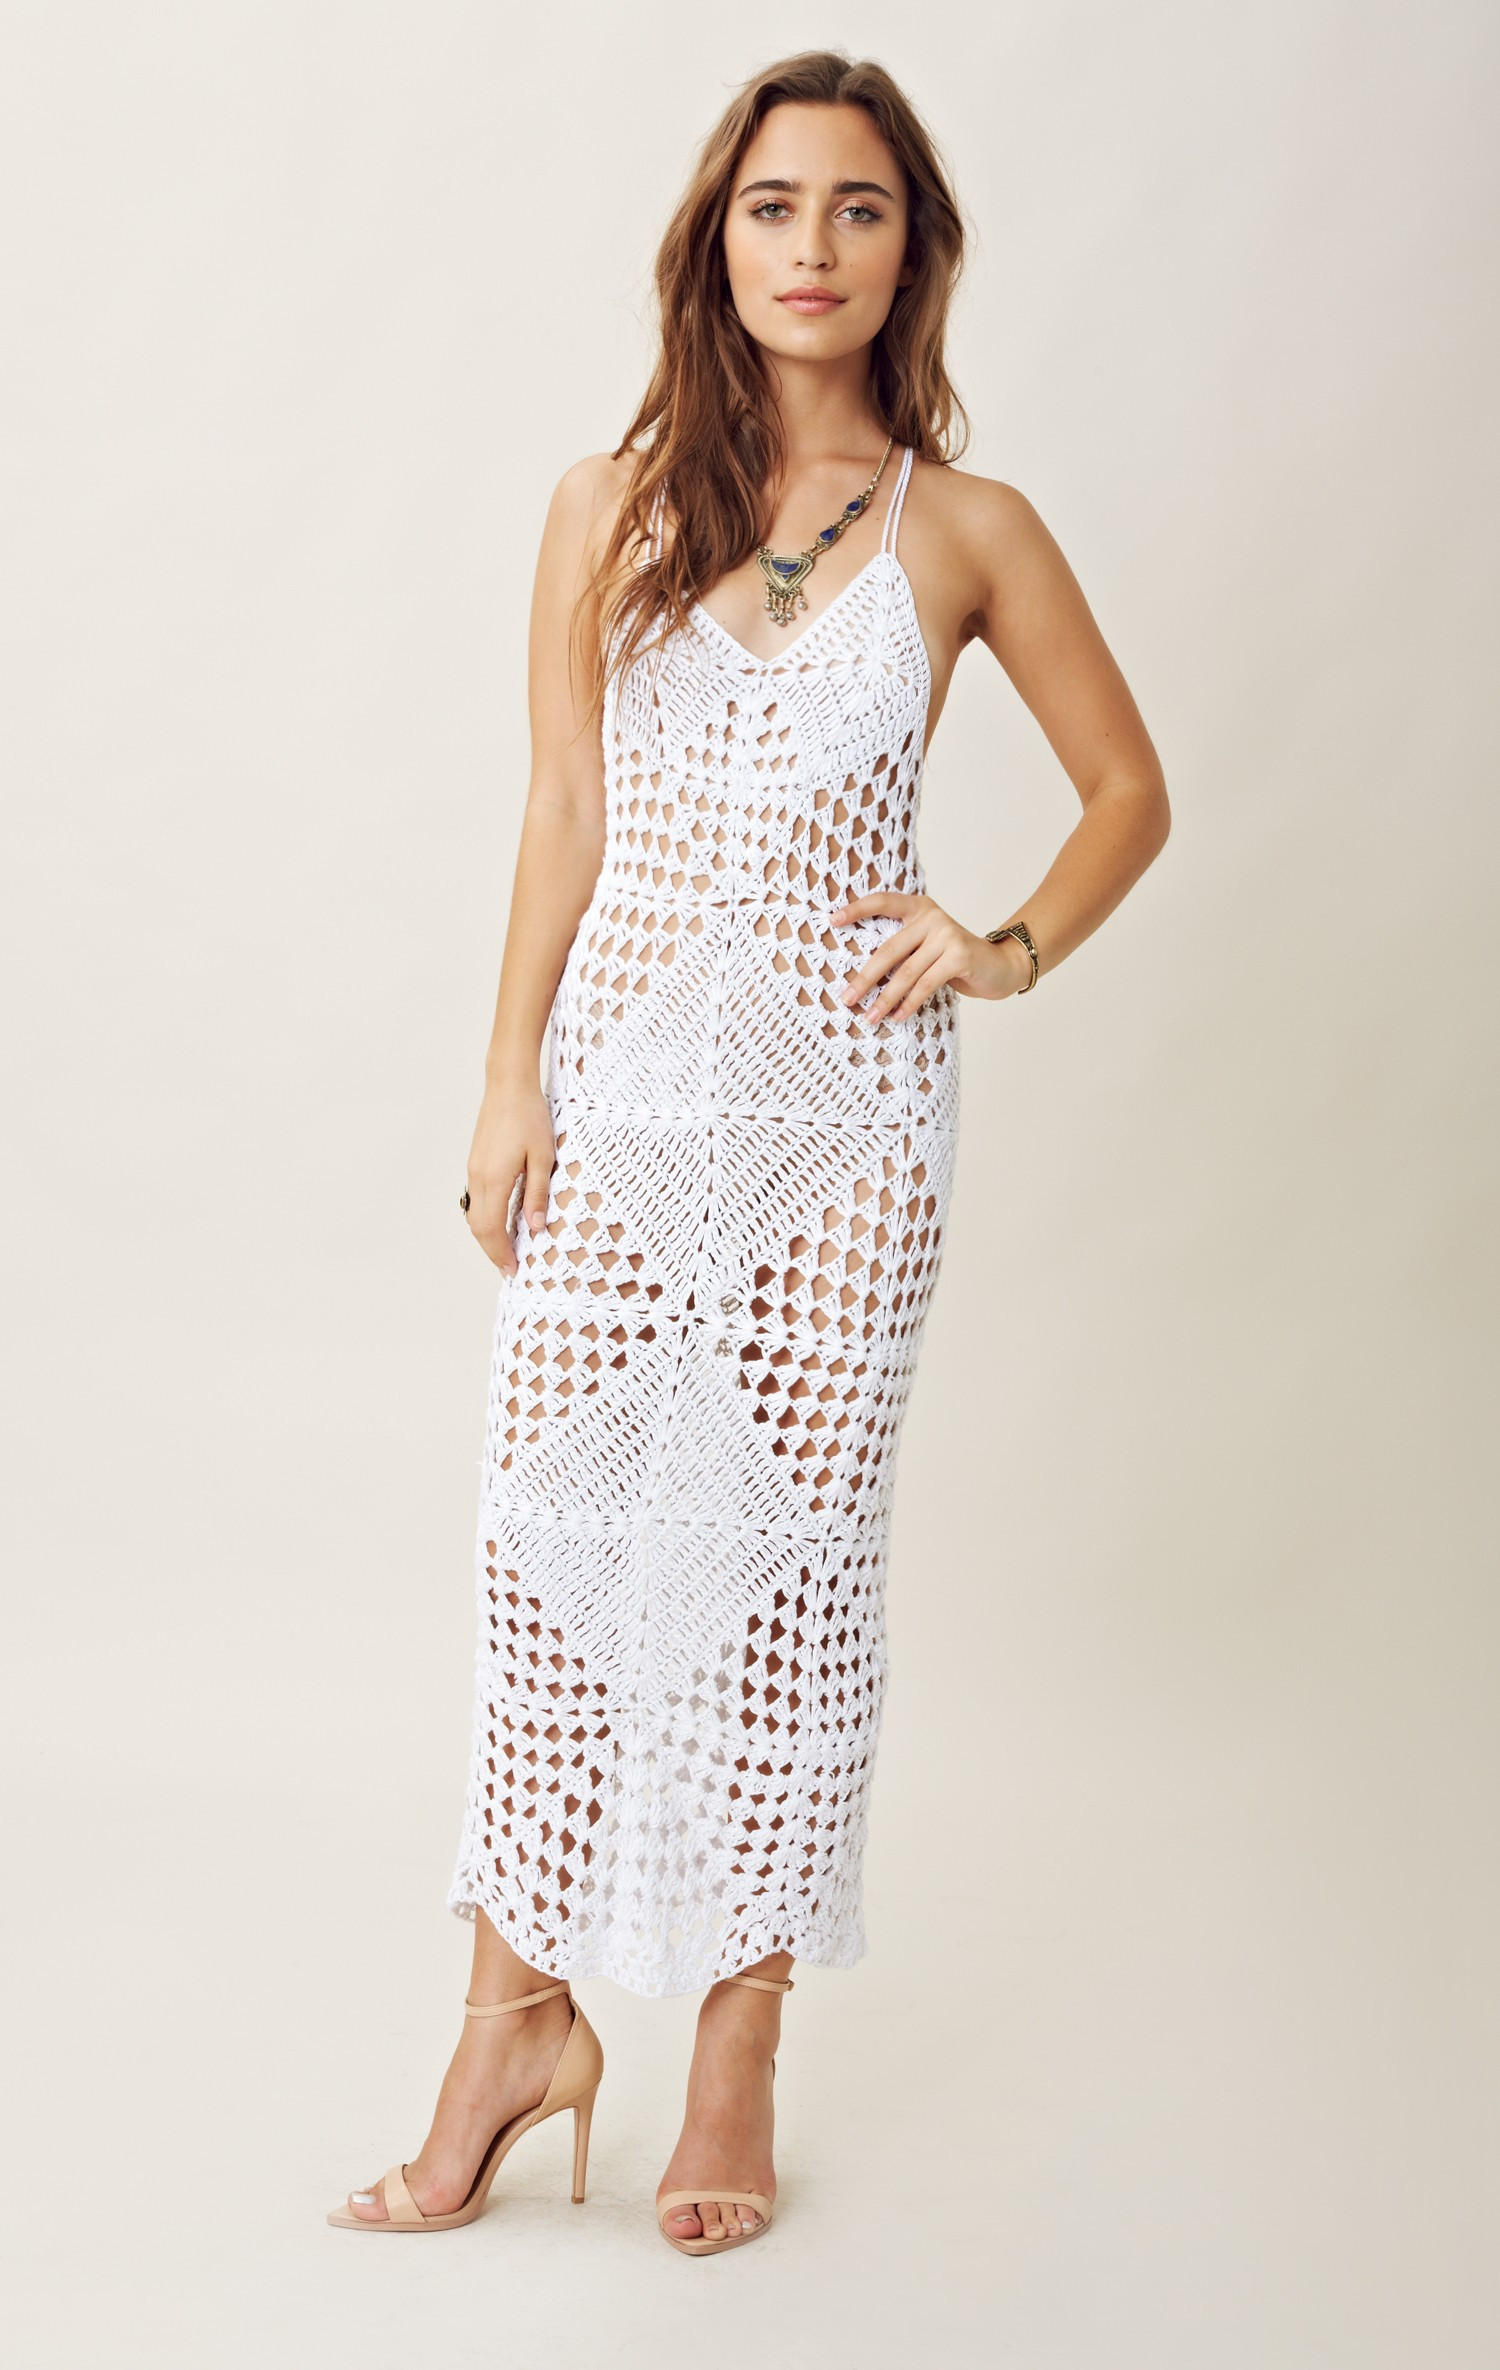 Crochet top Maxi Dress Lovely How to Style A Crochet Maxi Dress – Careyfashion Of Superb 43 Models Crochet top Maxi Dress